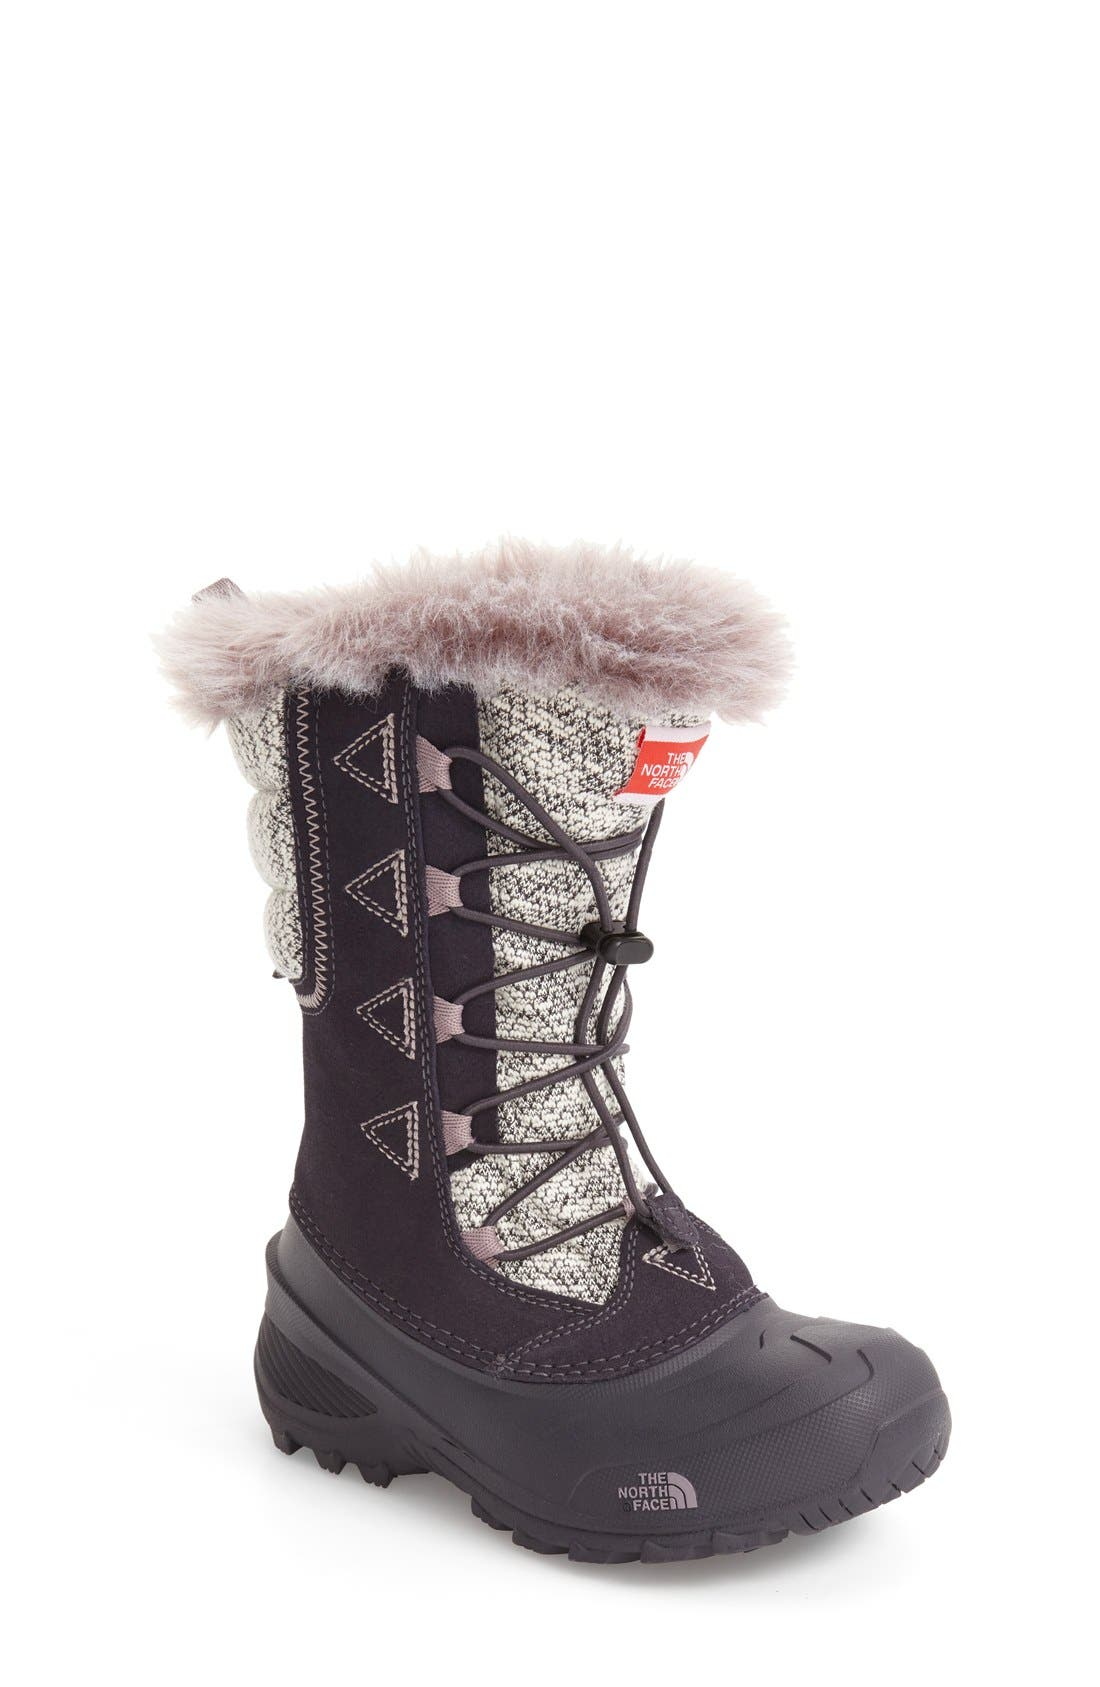 The North Face Shellista Lace II Waterproof Boot (Toddler, Little Kid & Big Kid)